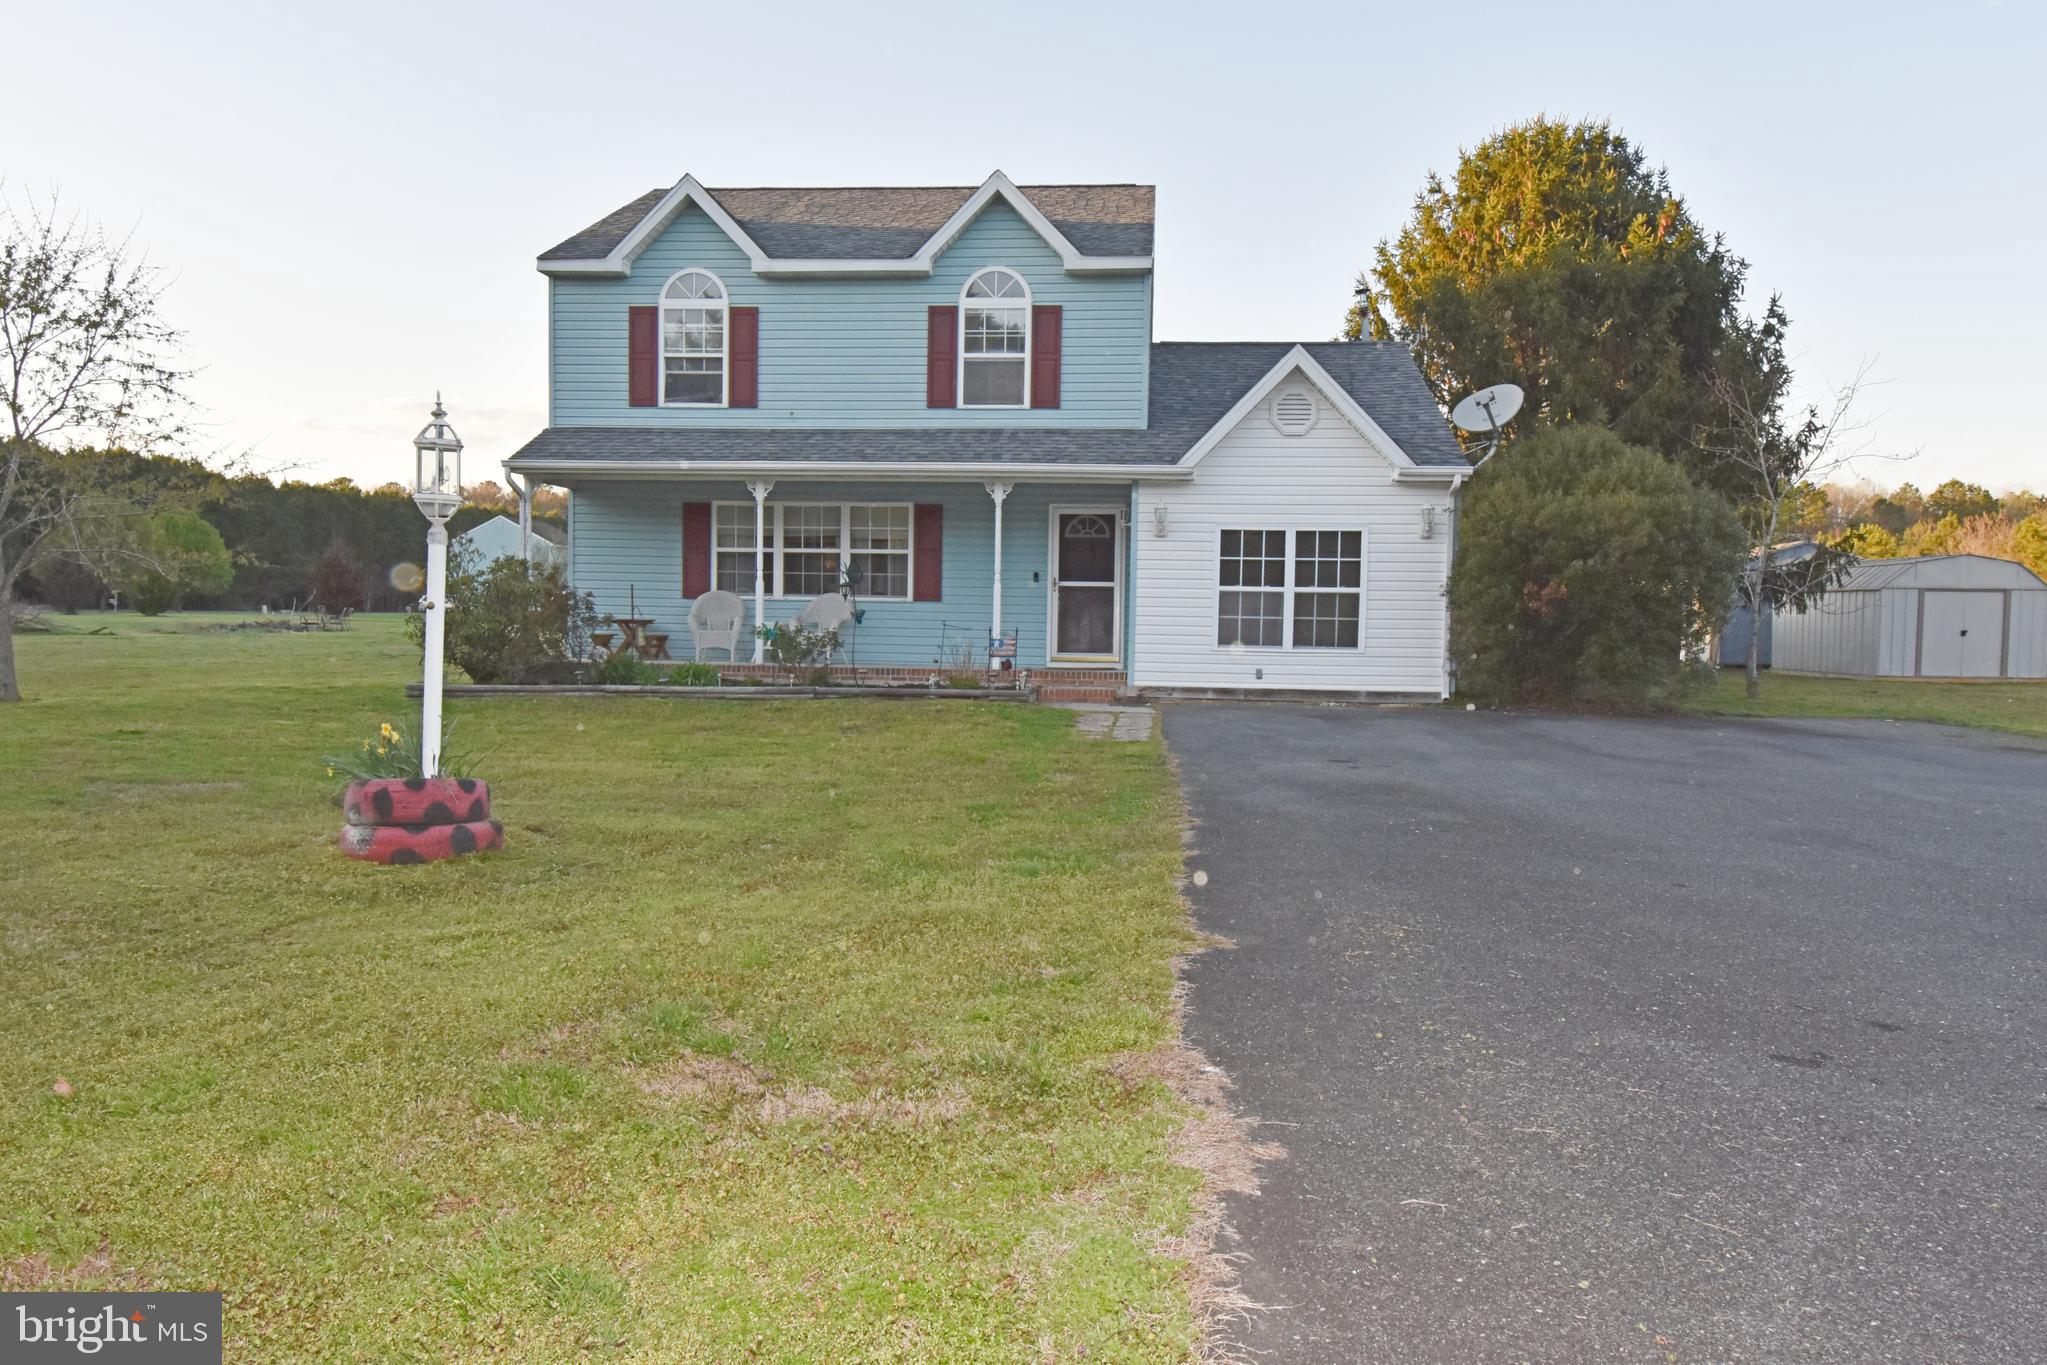 This rural beauty could be yours!   The home features three bedrooms, two full bathrooms, a remodele